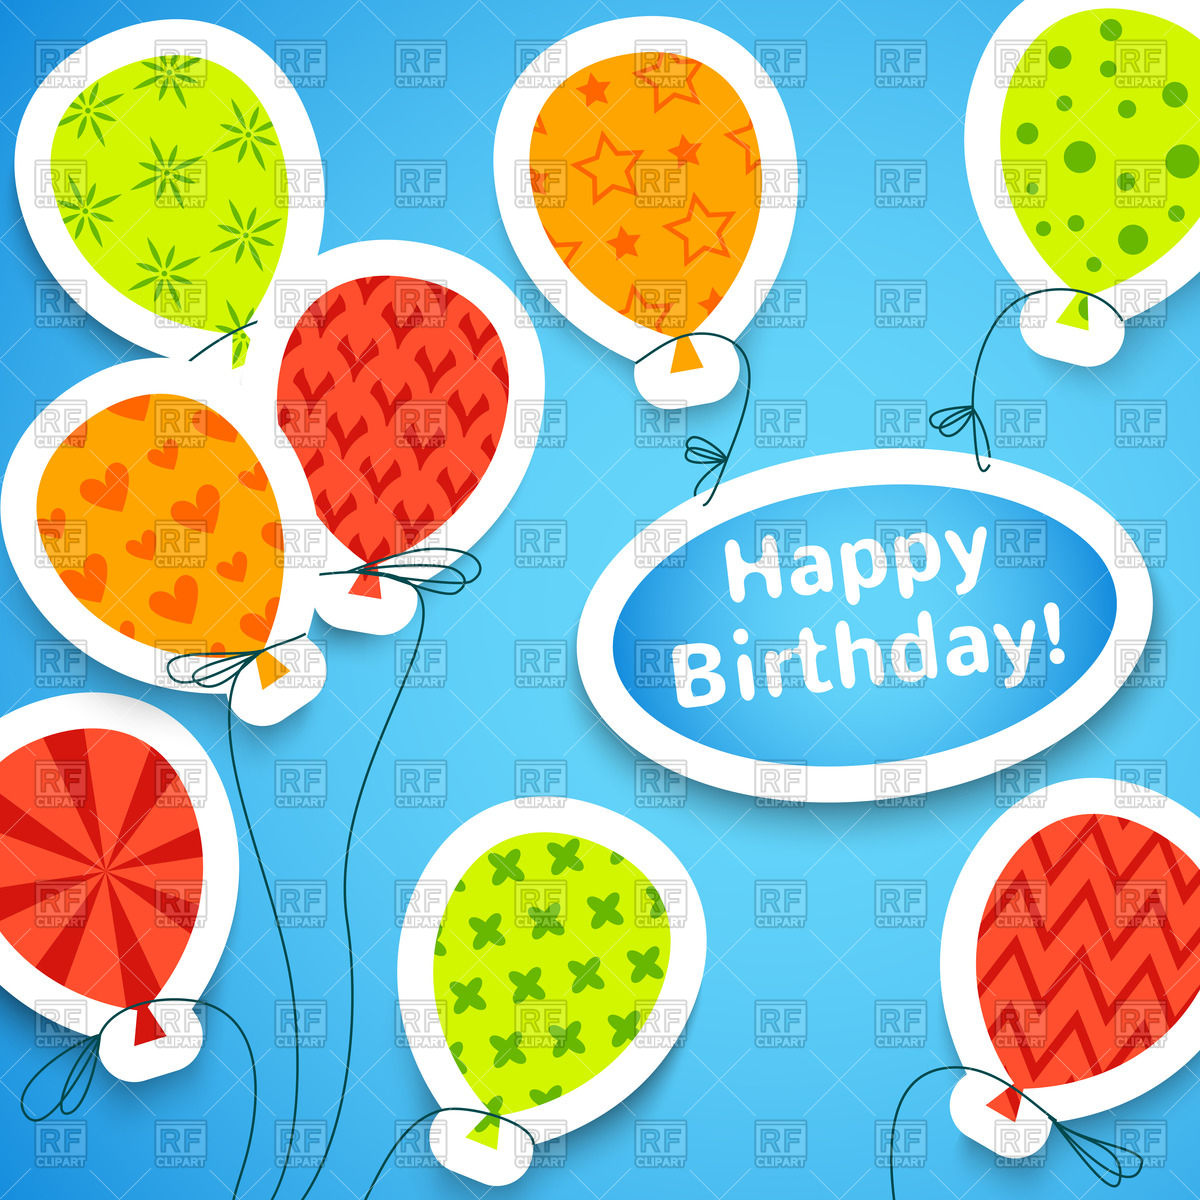 1200x1200 Birthday colorful applique background with balloons Royalty Free